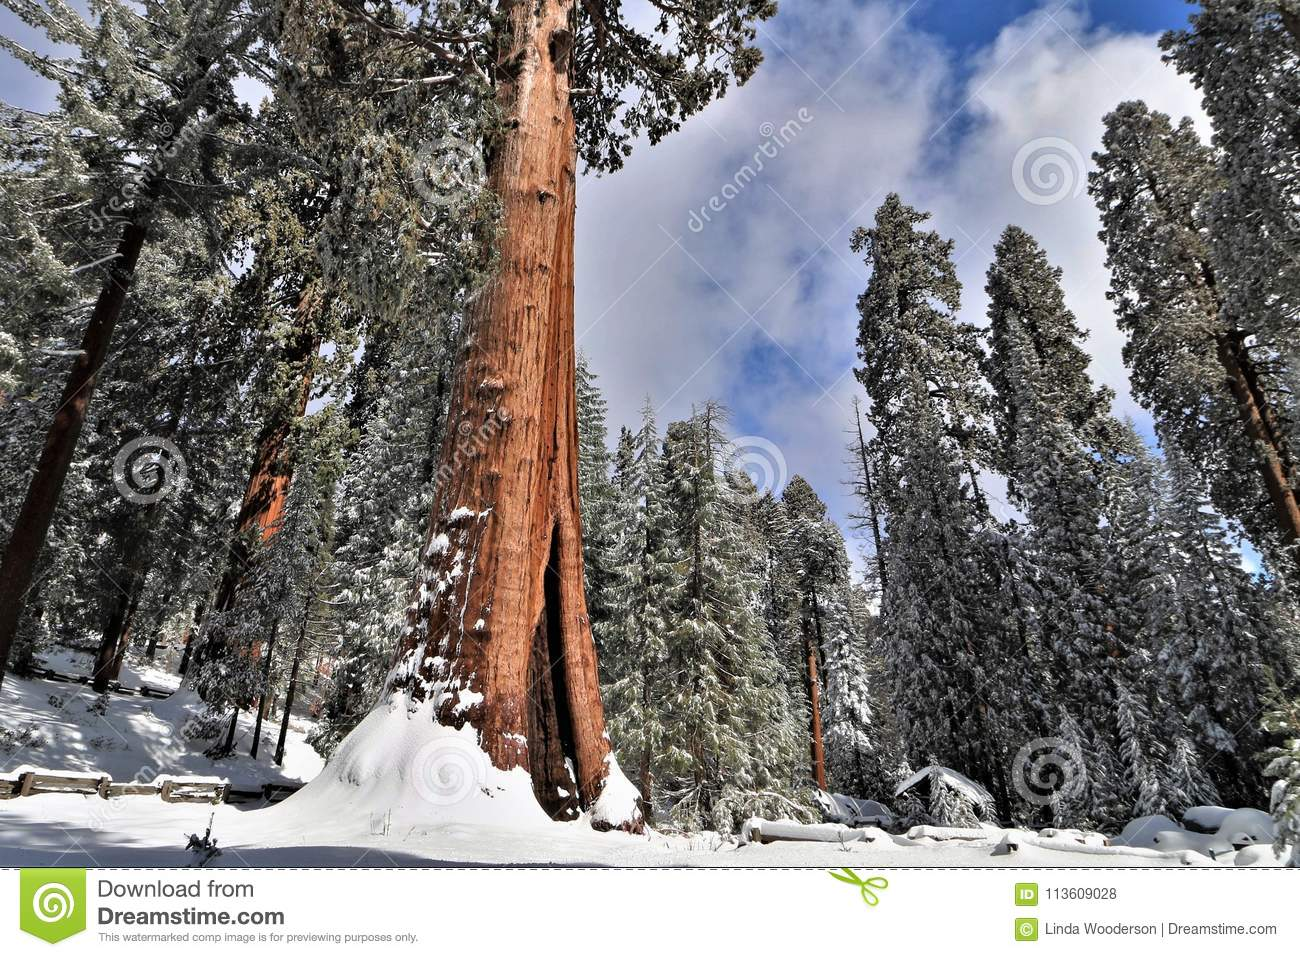 kings canyon lodging visit stevecalderaro gettingthere getting in camping park national california seki cabins sequoia attraction there